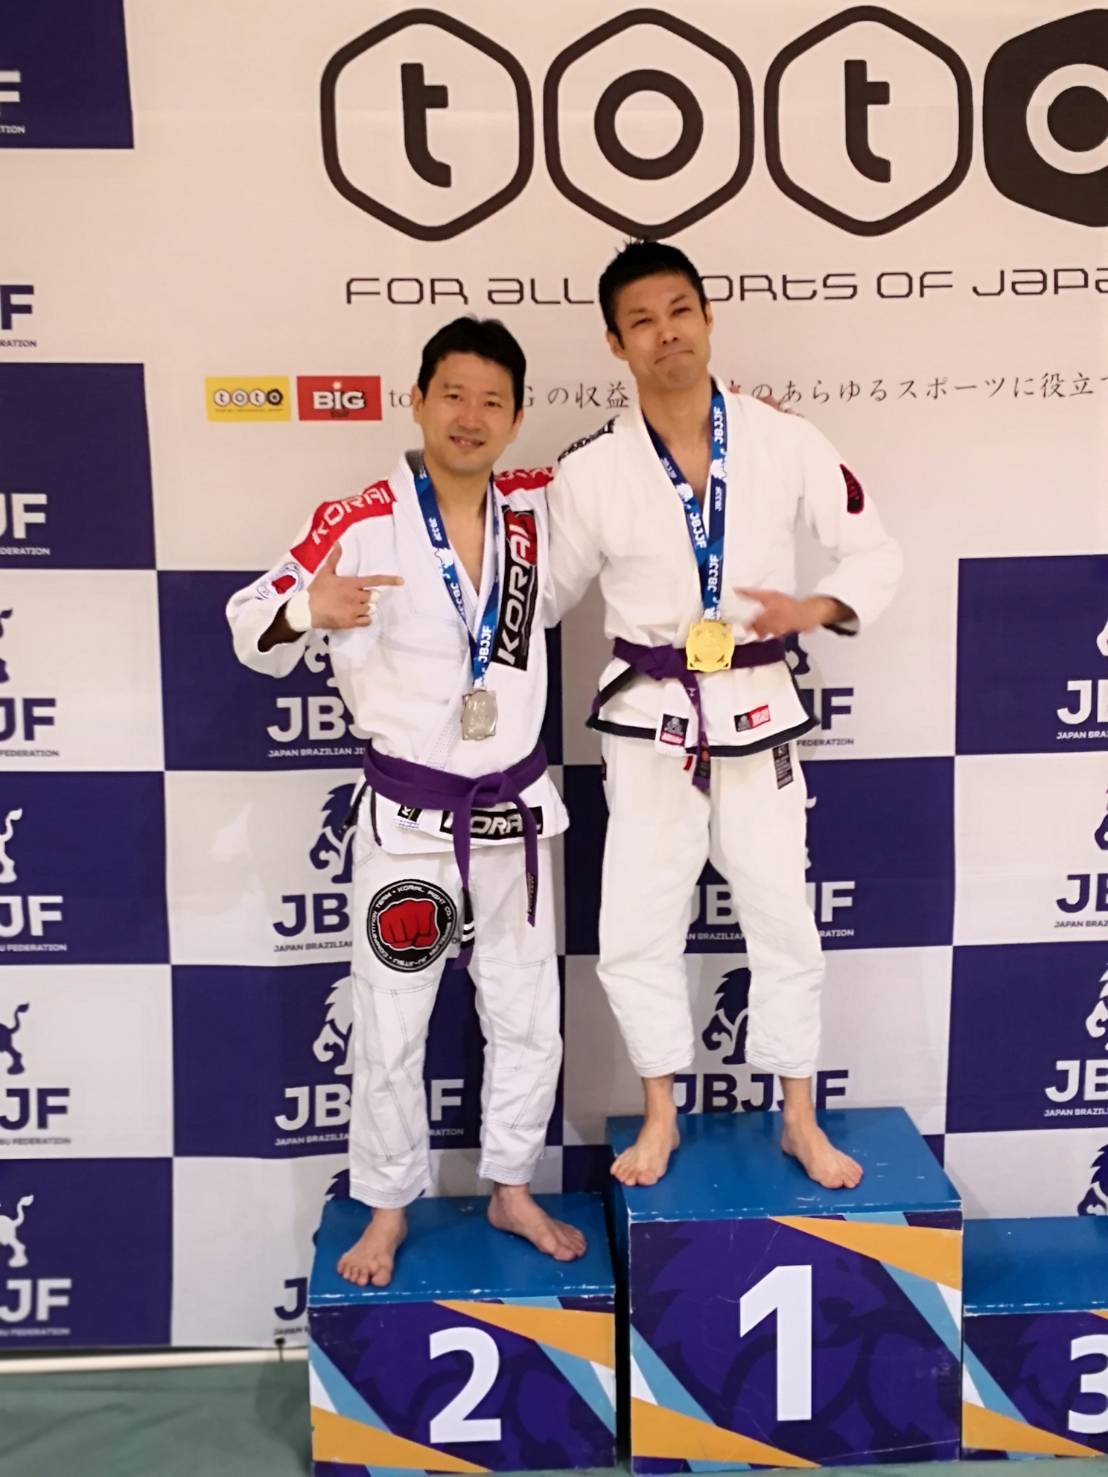 12th KANTO JIU-JITSU Open Tournament|大会写真02